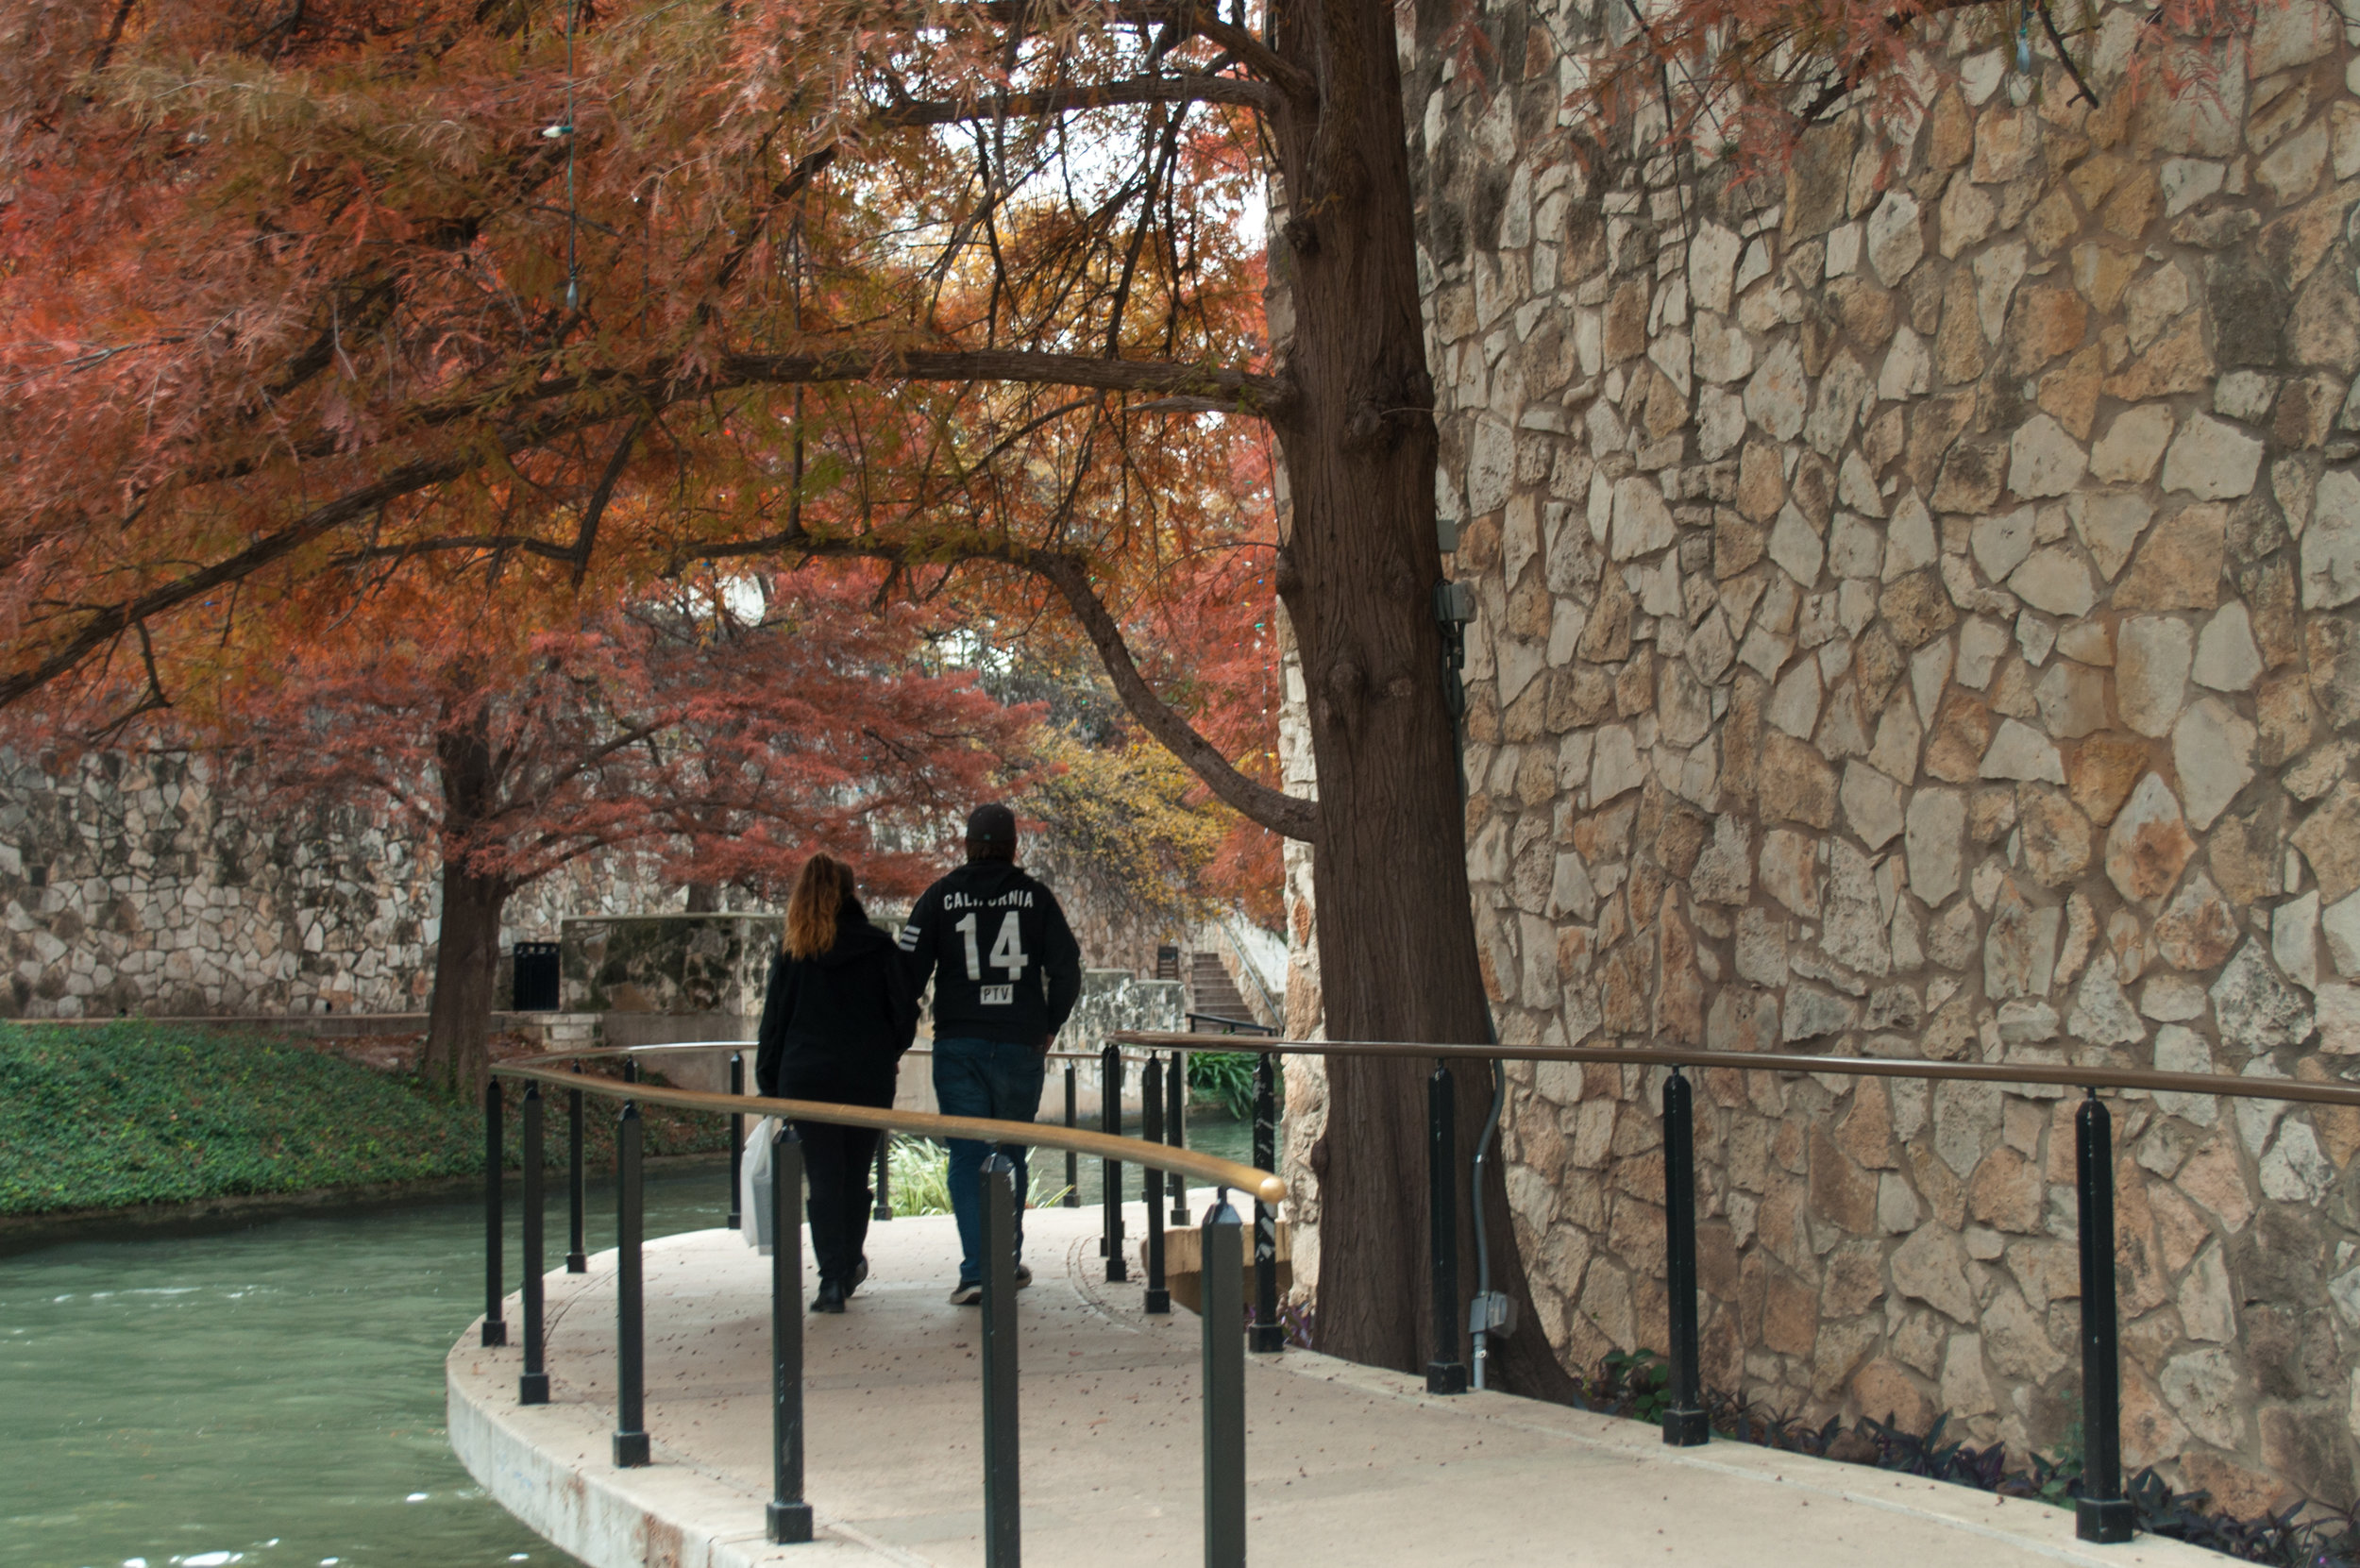 Fall colors and people watching in San Antonio.